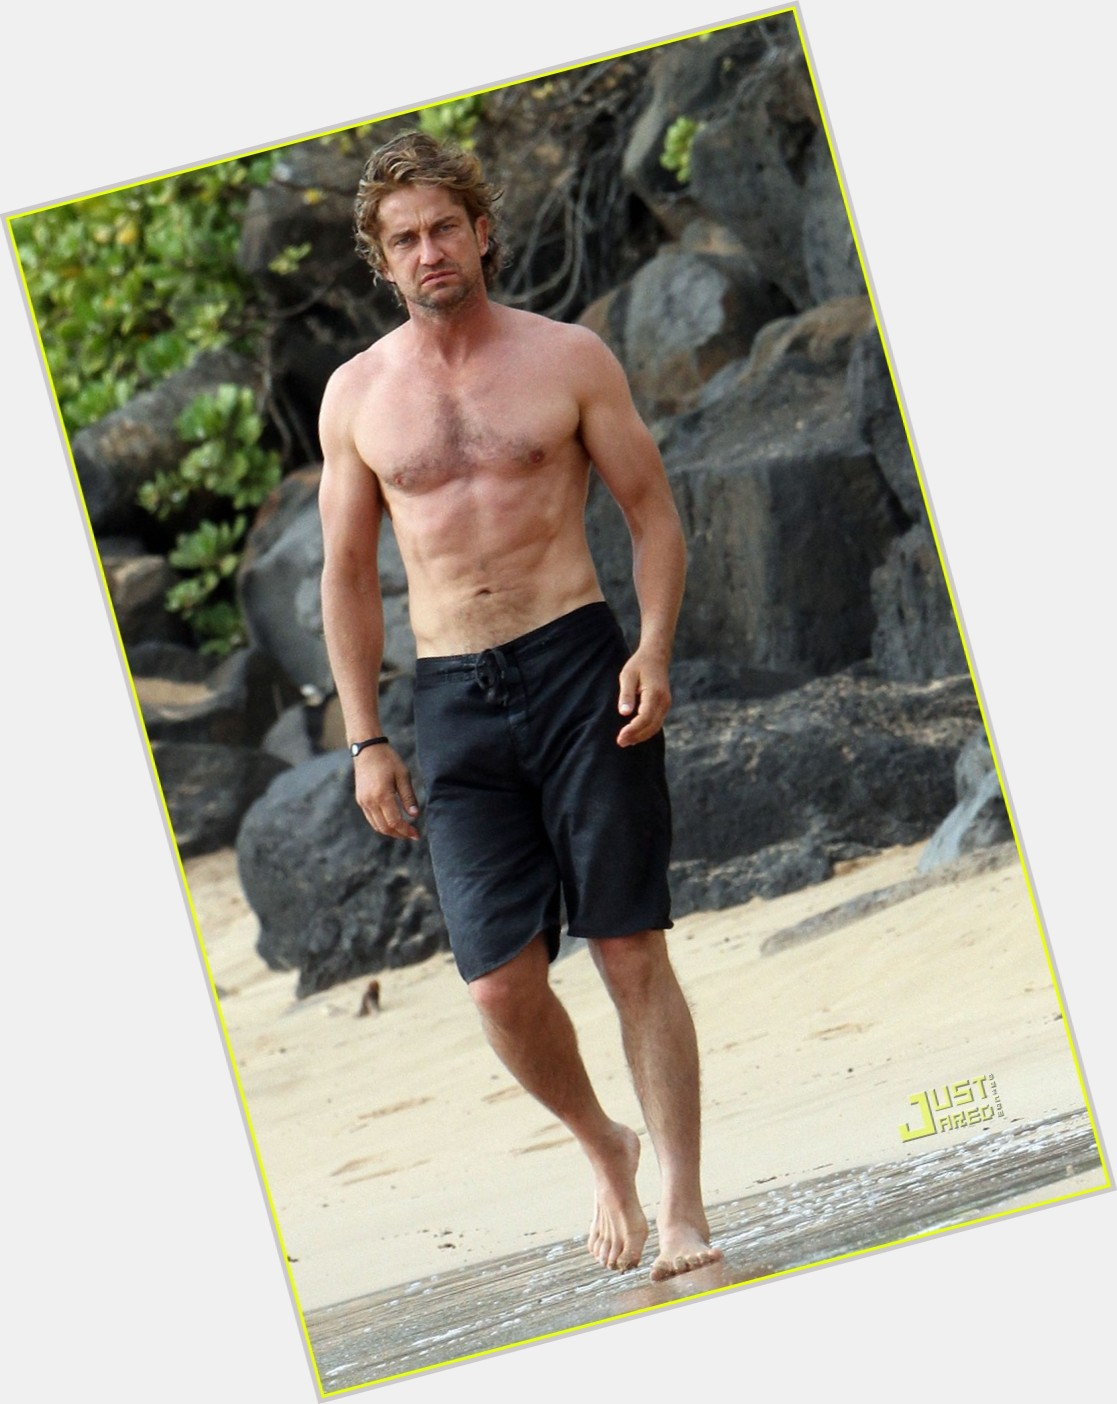 butler black single women 7 august 2018 gerard butler news, gossip, photos of gerard butler, biography, gerard butler girlfriend list 2016 relationship history gerard butler relationship list.